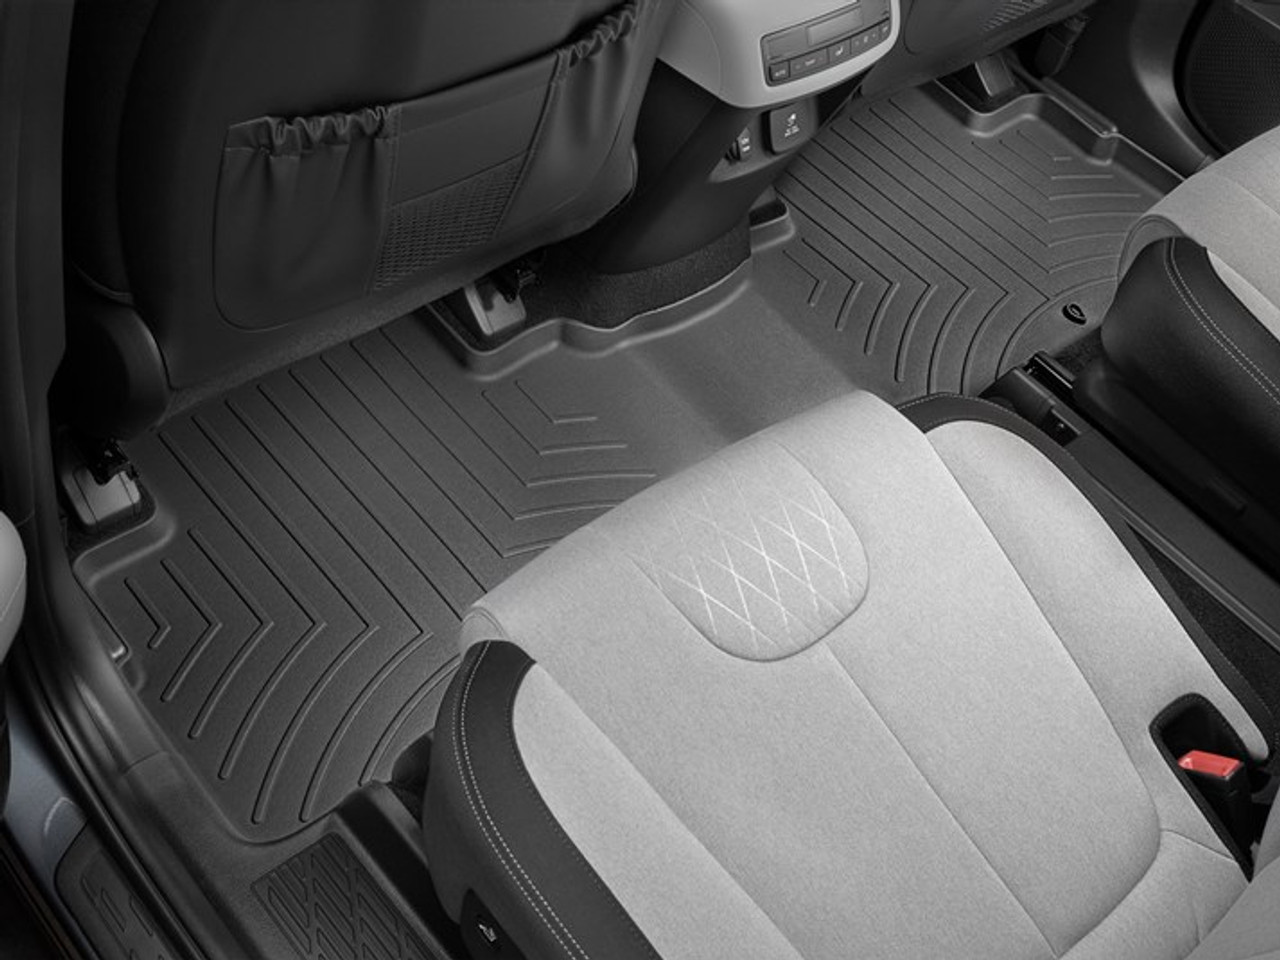 2020-2021 Hyundai Palisade WeatherTech Floor Liners - Second Row (Black)